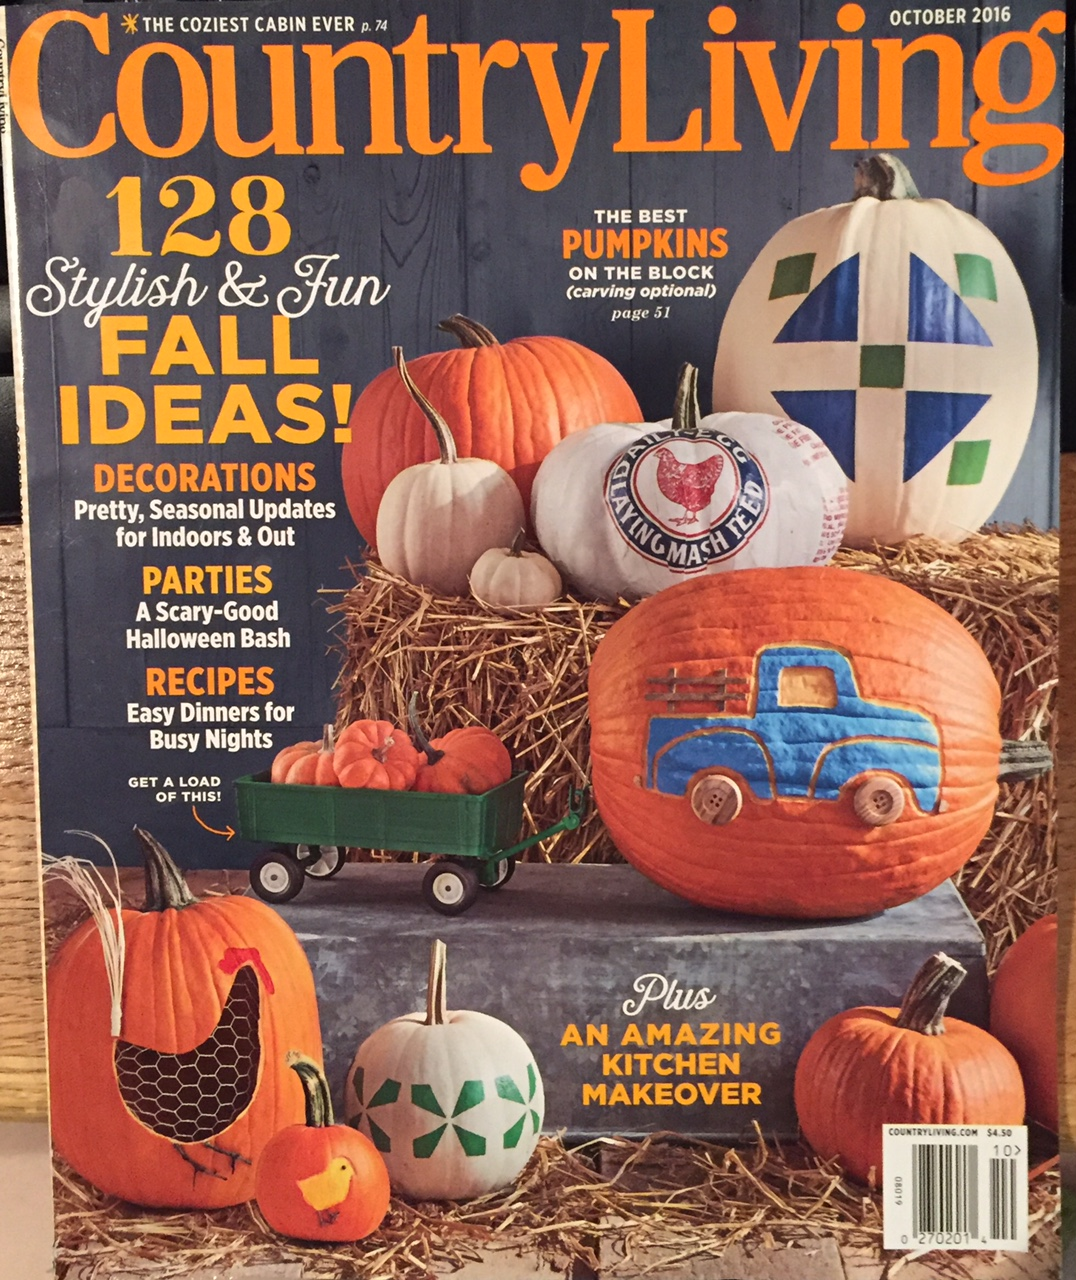 Vintage Halloween In October 2016 Country Living Magazine